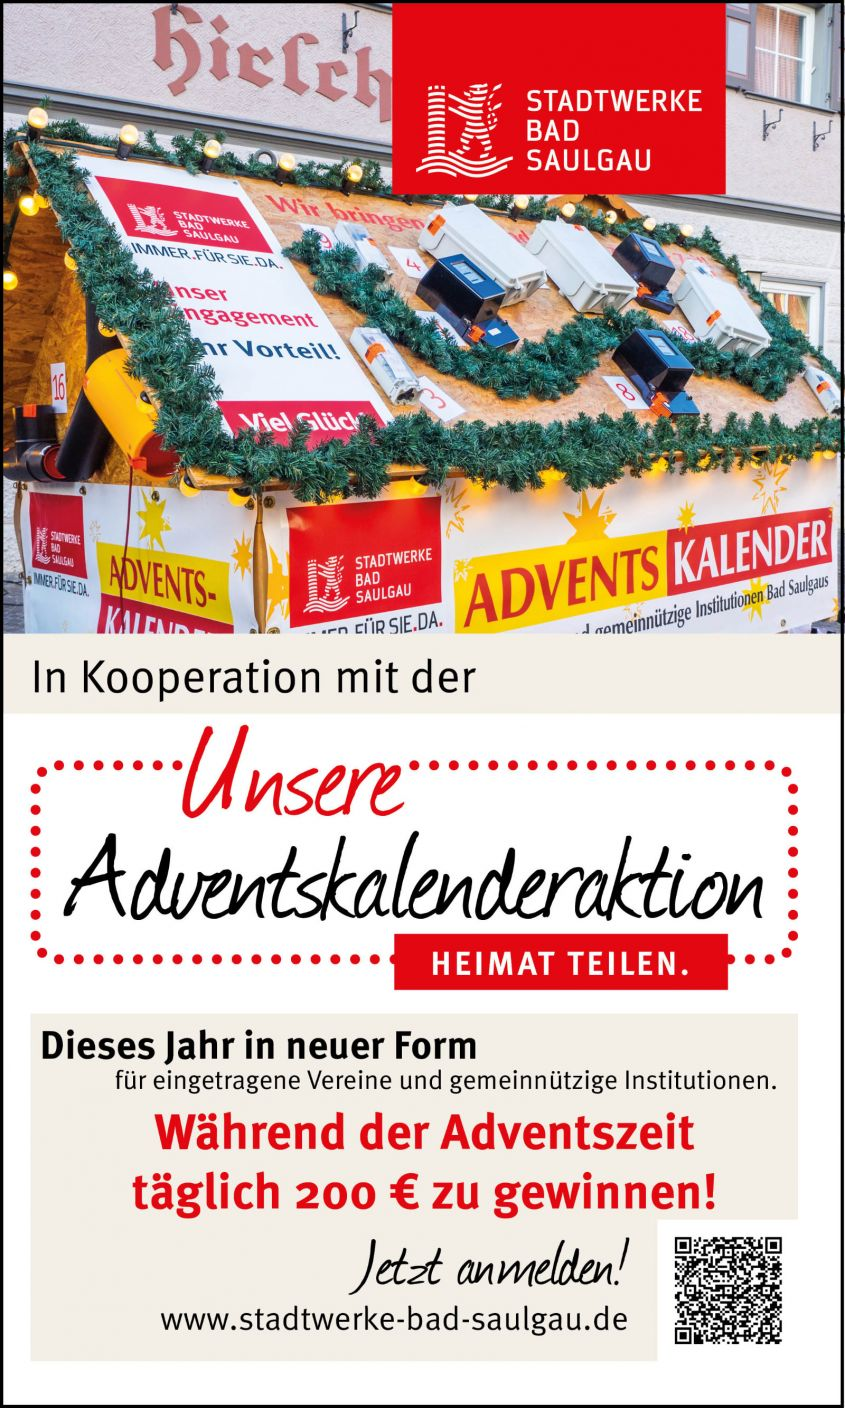 Adventskalenderaktion 2020